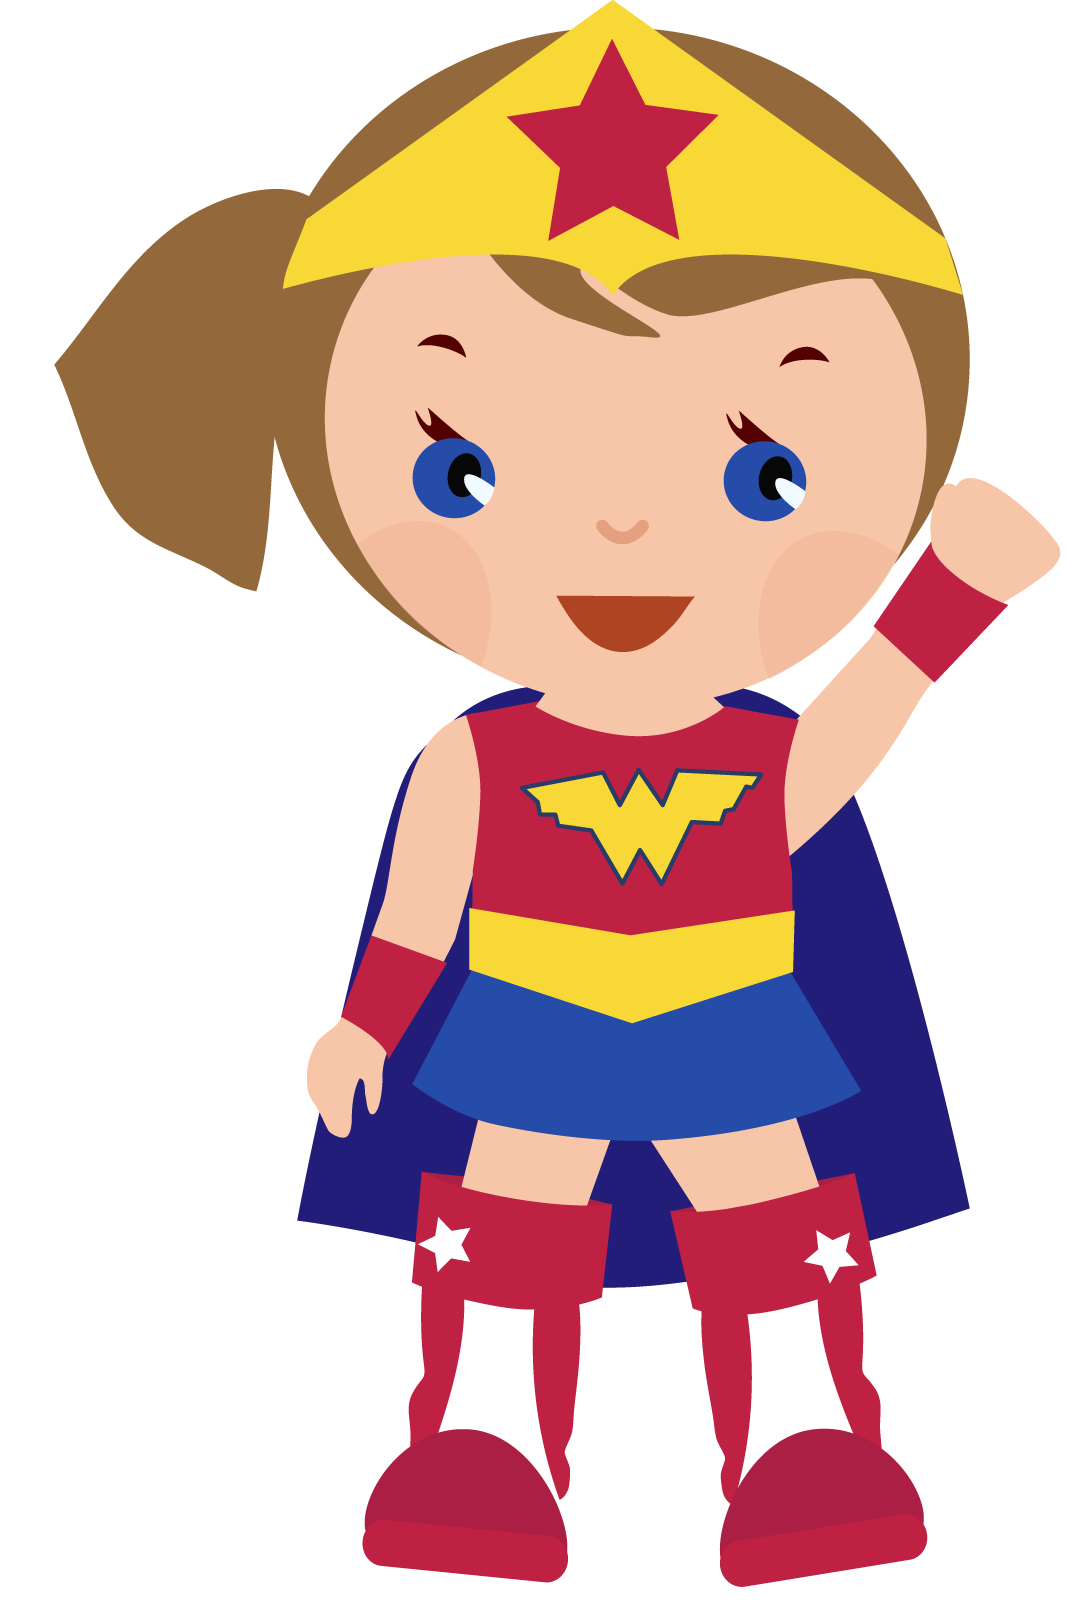 Superhero christmas clipart picture freeuse Superhero Christmas Clipart at GetDrawings.com | Free for ... picture freeuse